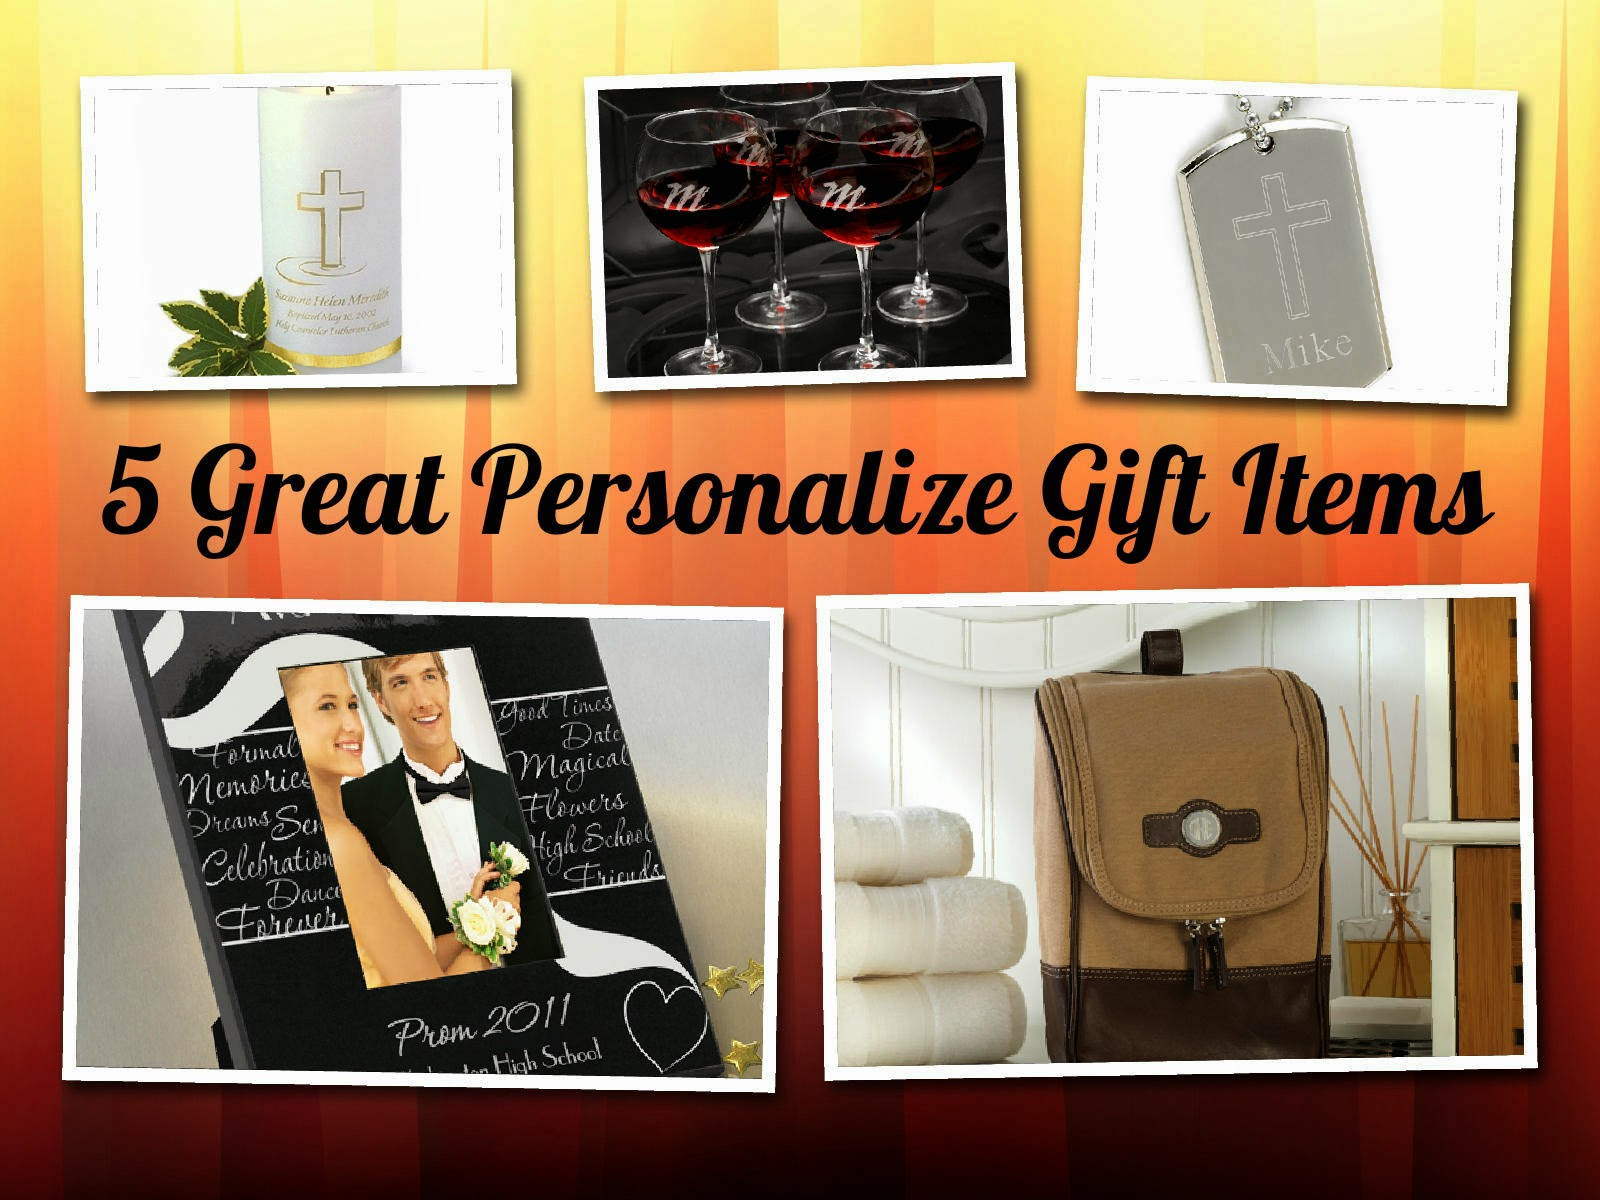 Personalize Gift Items